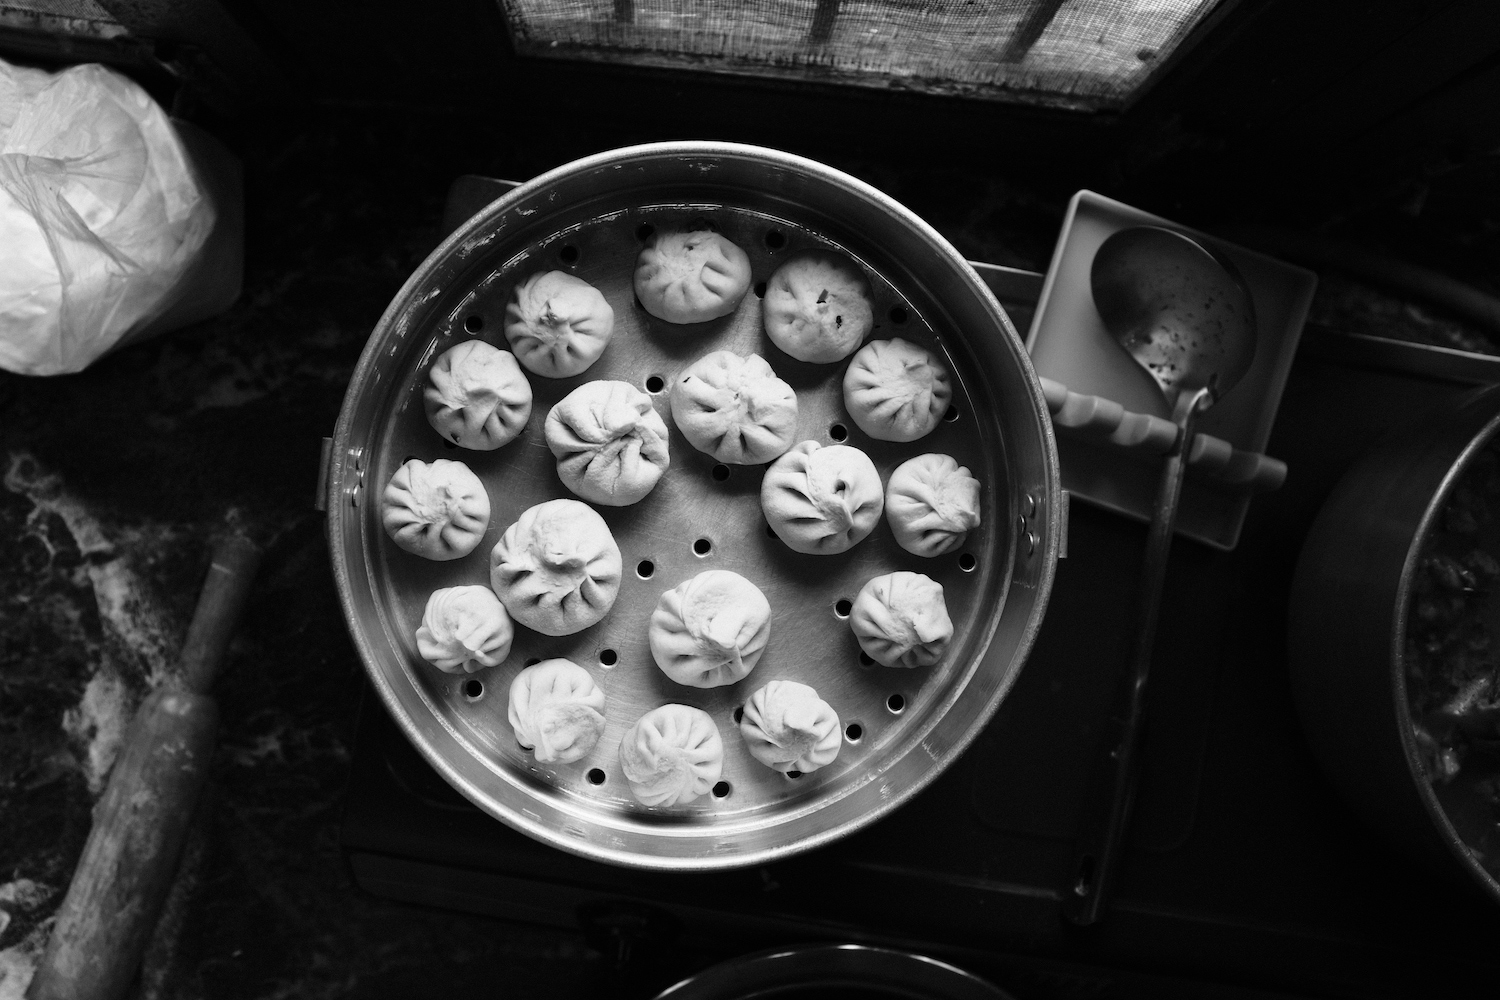 Uncooked momos sitting in the steamer